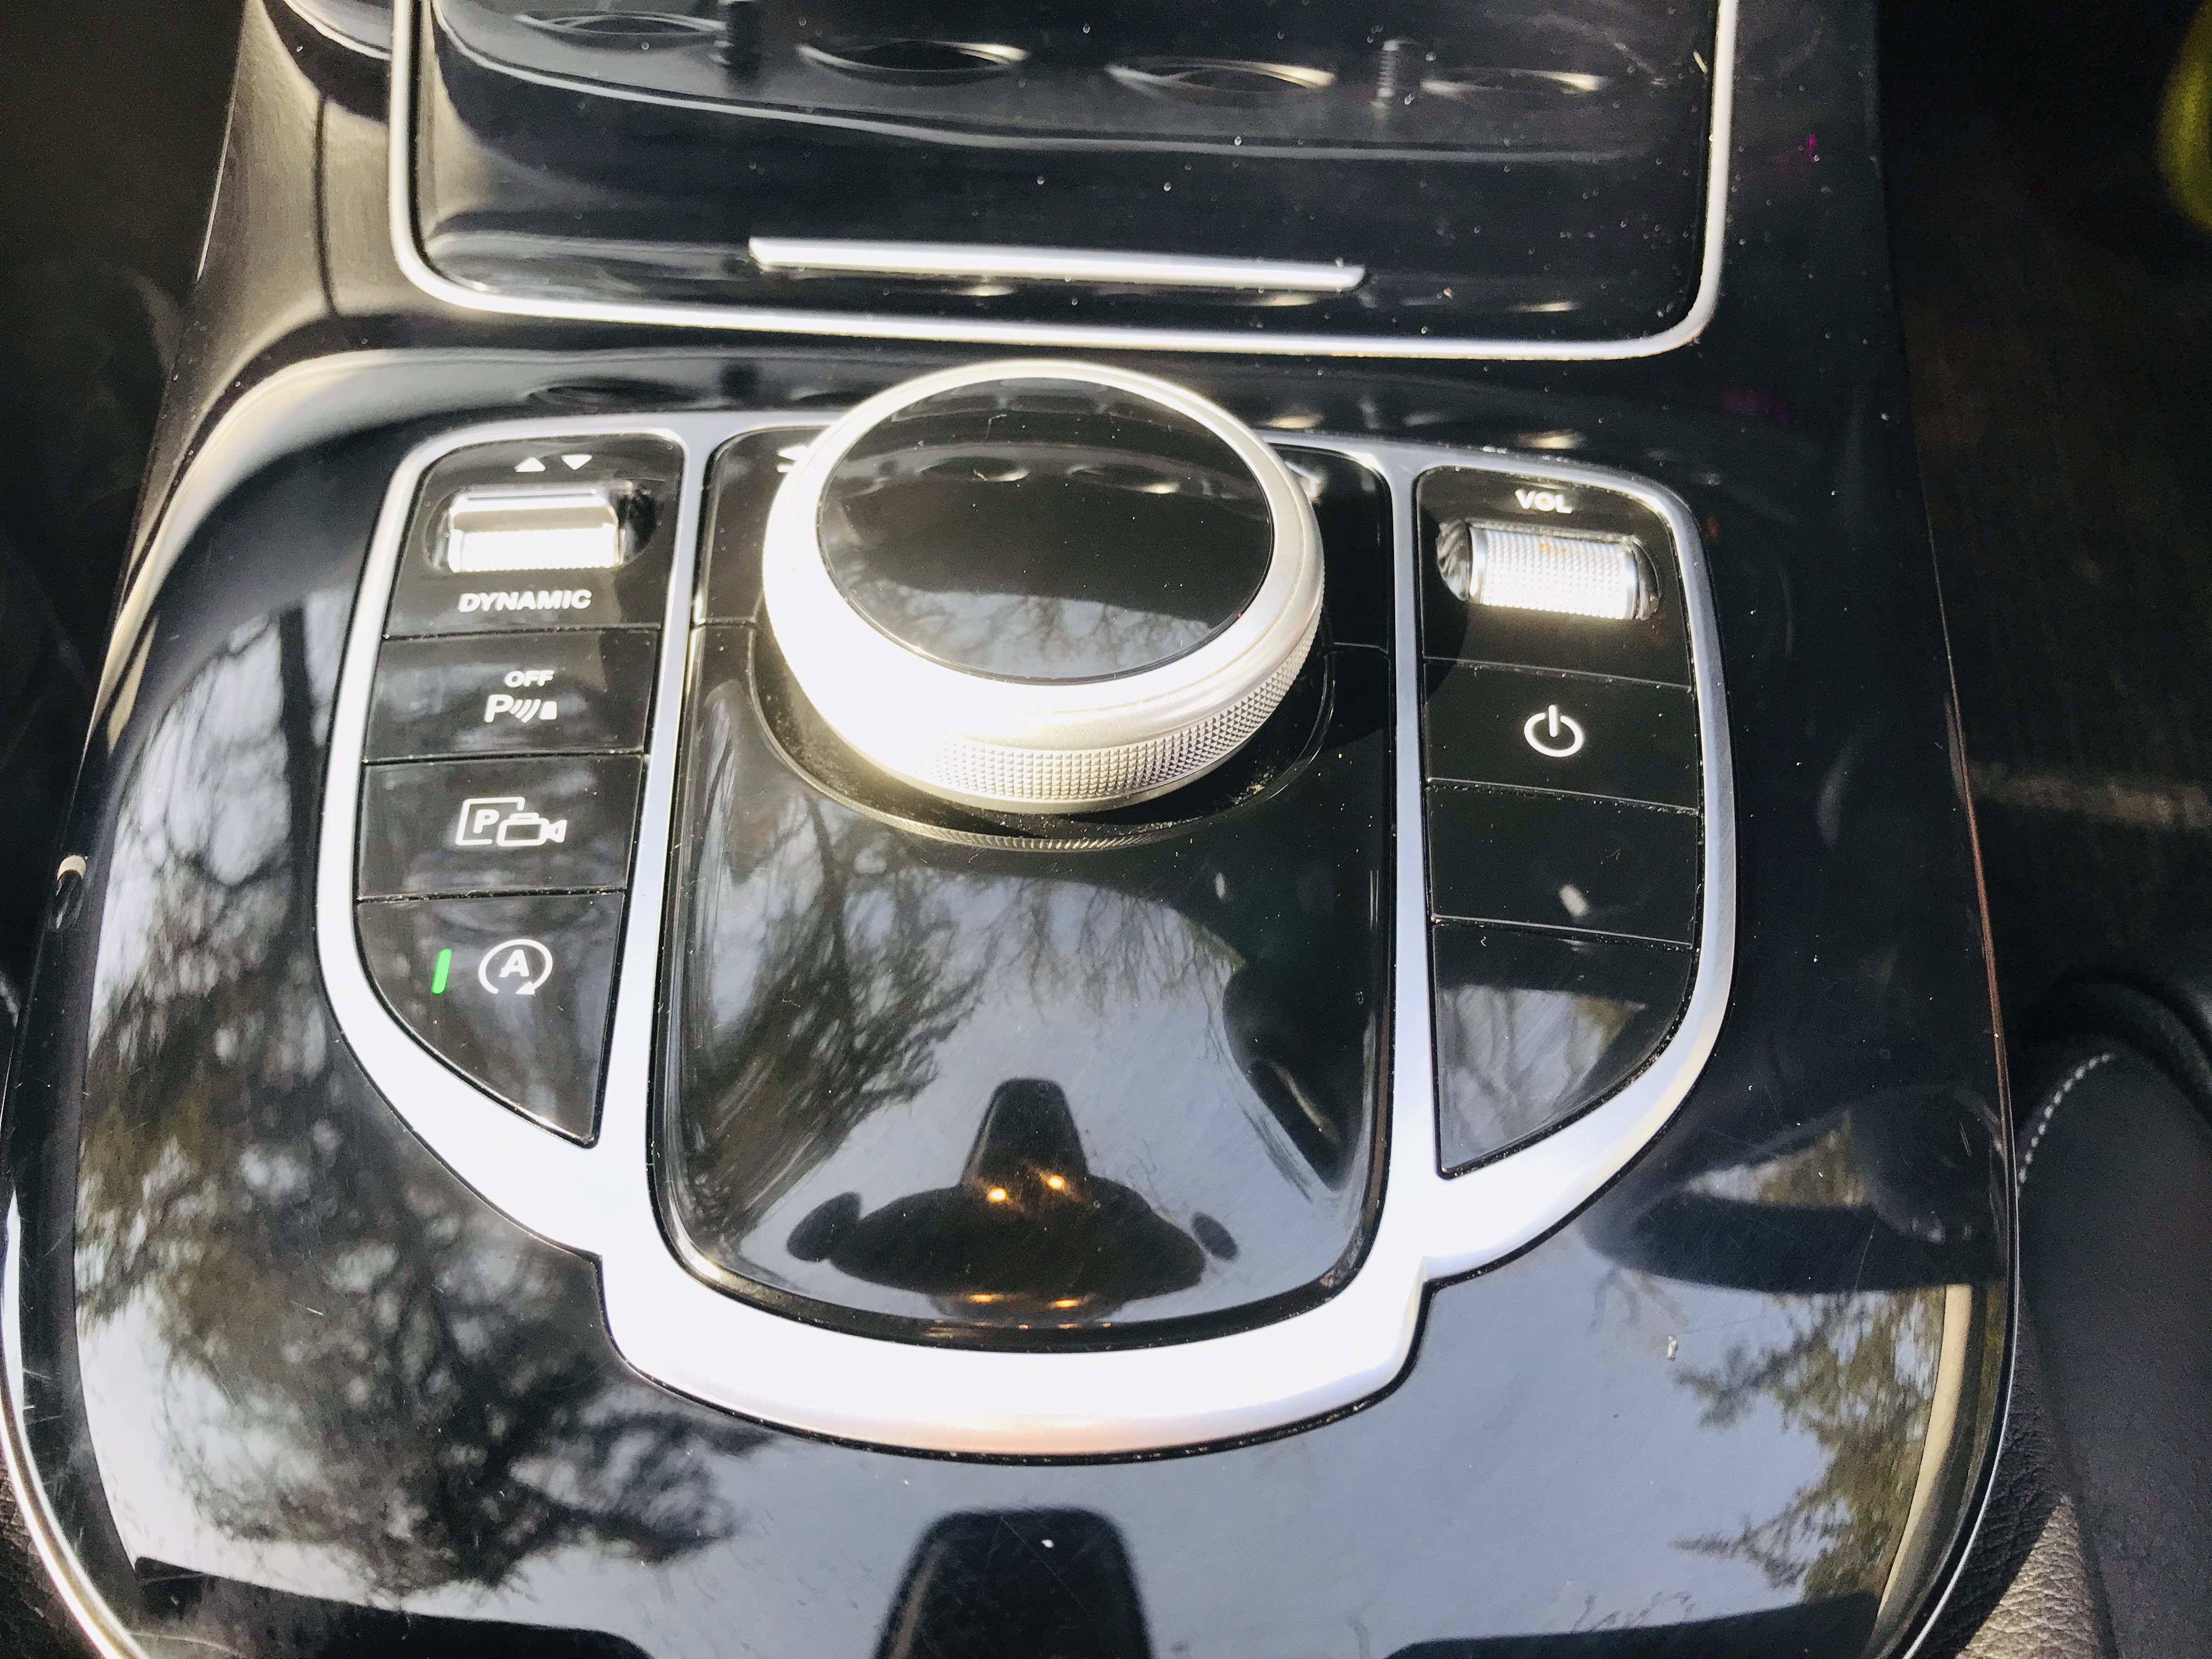 """On Sale MERCEDES E220d """"SPECIAL EQUIPMENT"""" 9G TRONIC (2019 MODEL) 1 OWNER - SAT NAV - LEATHER - WOW! - Image 24 of 26"""